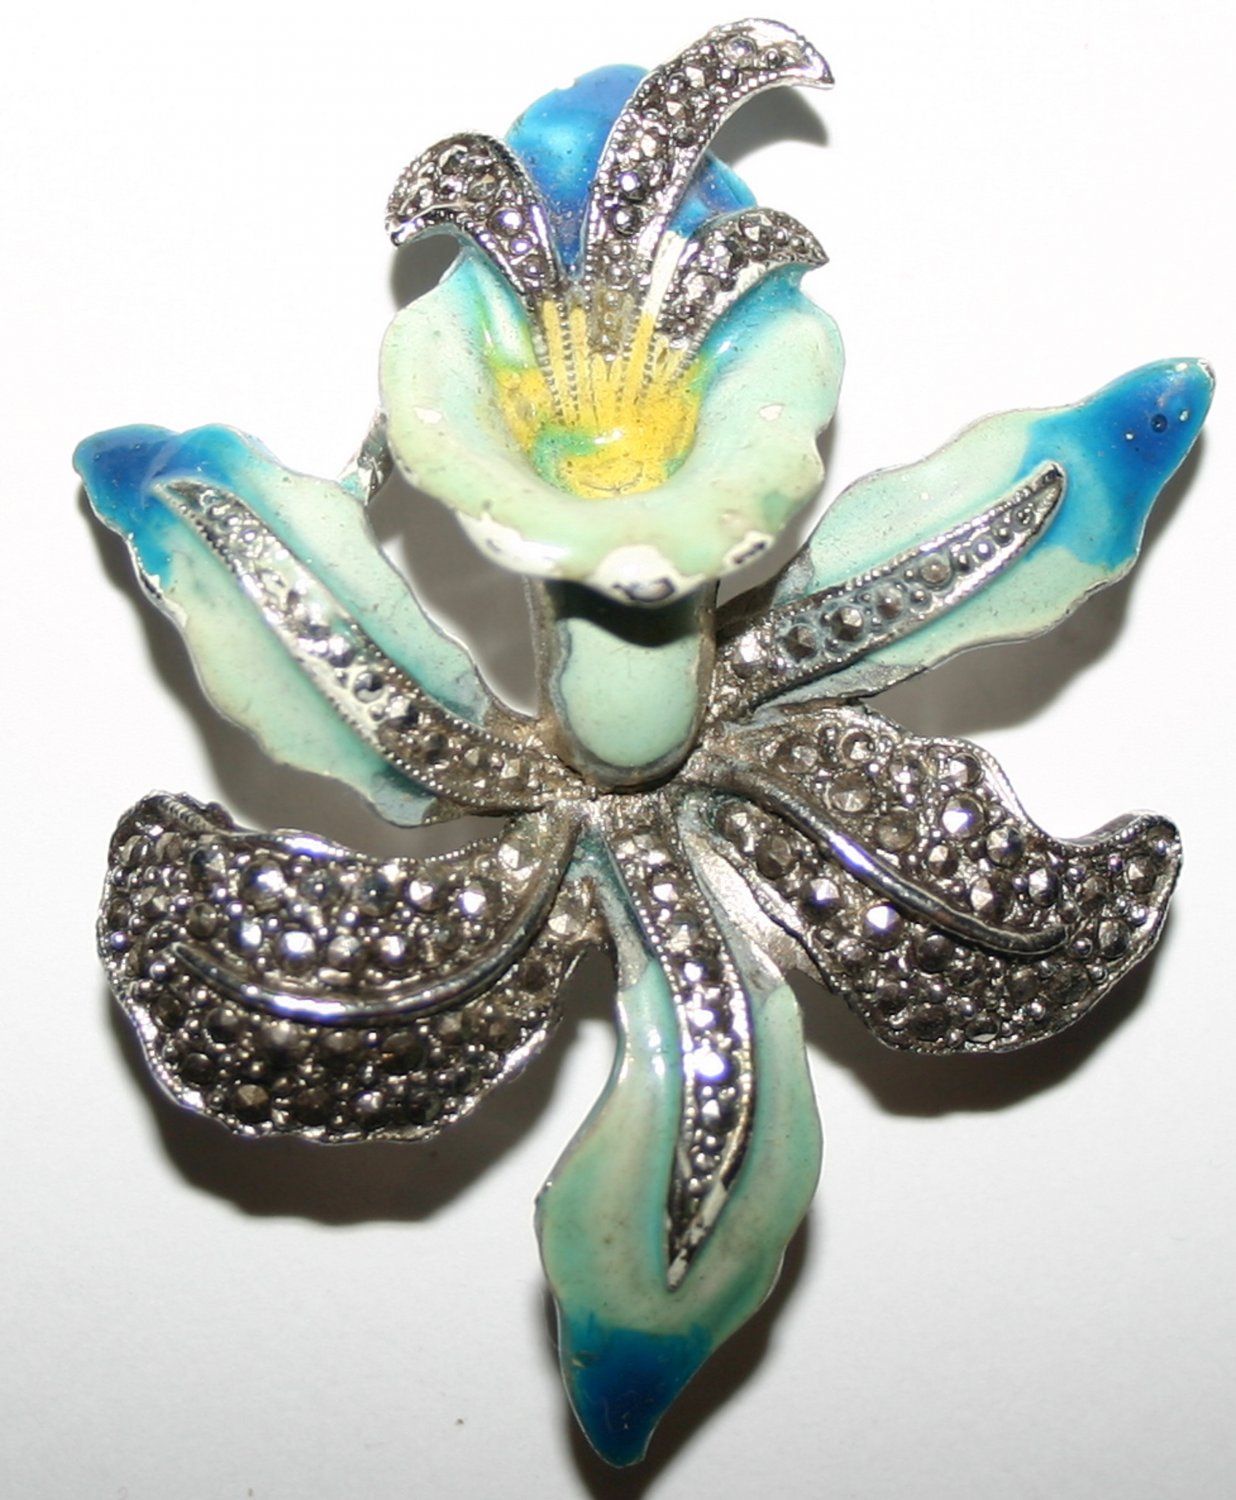 Vintage Sparking Diamond Encrusted Floral Brooch